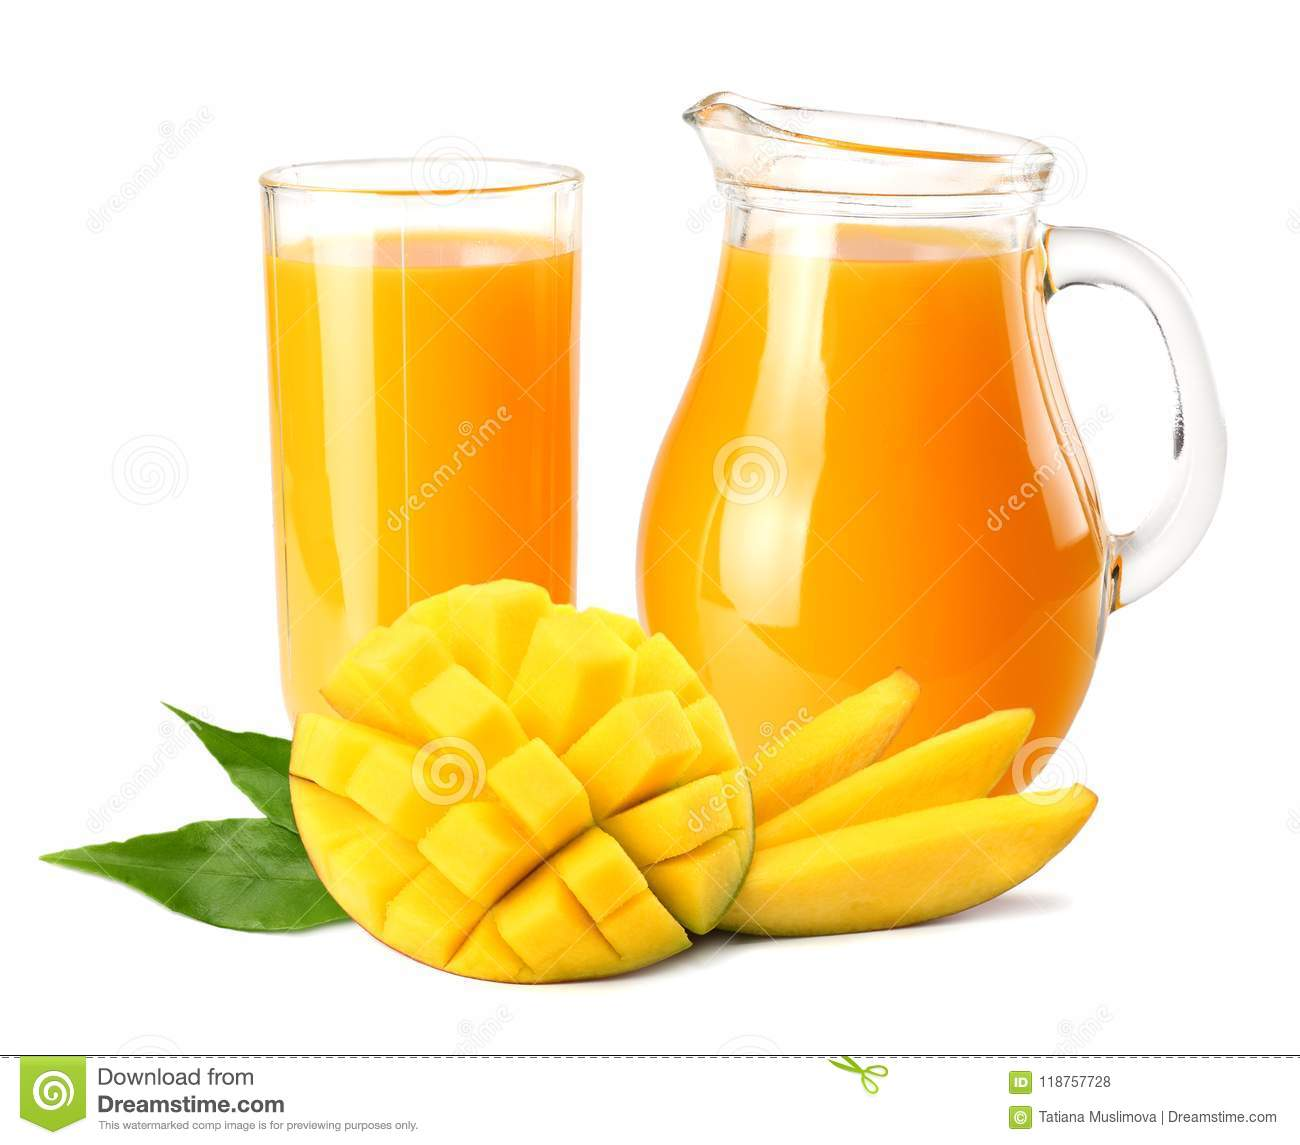 Mango Juice Pictures Images